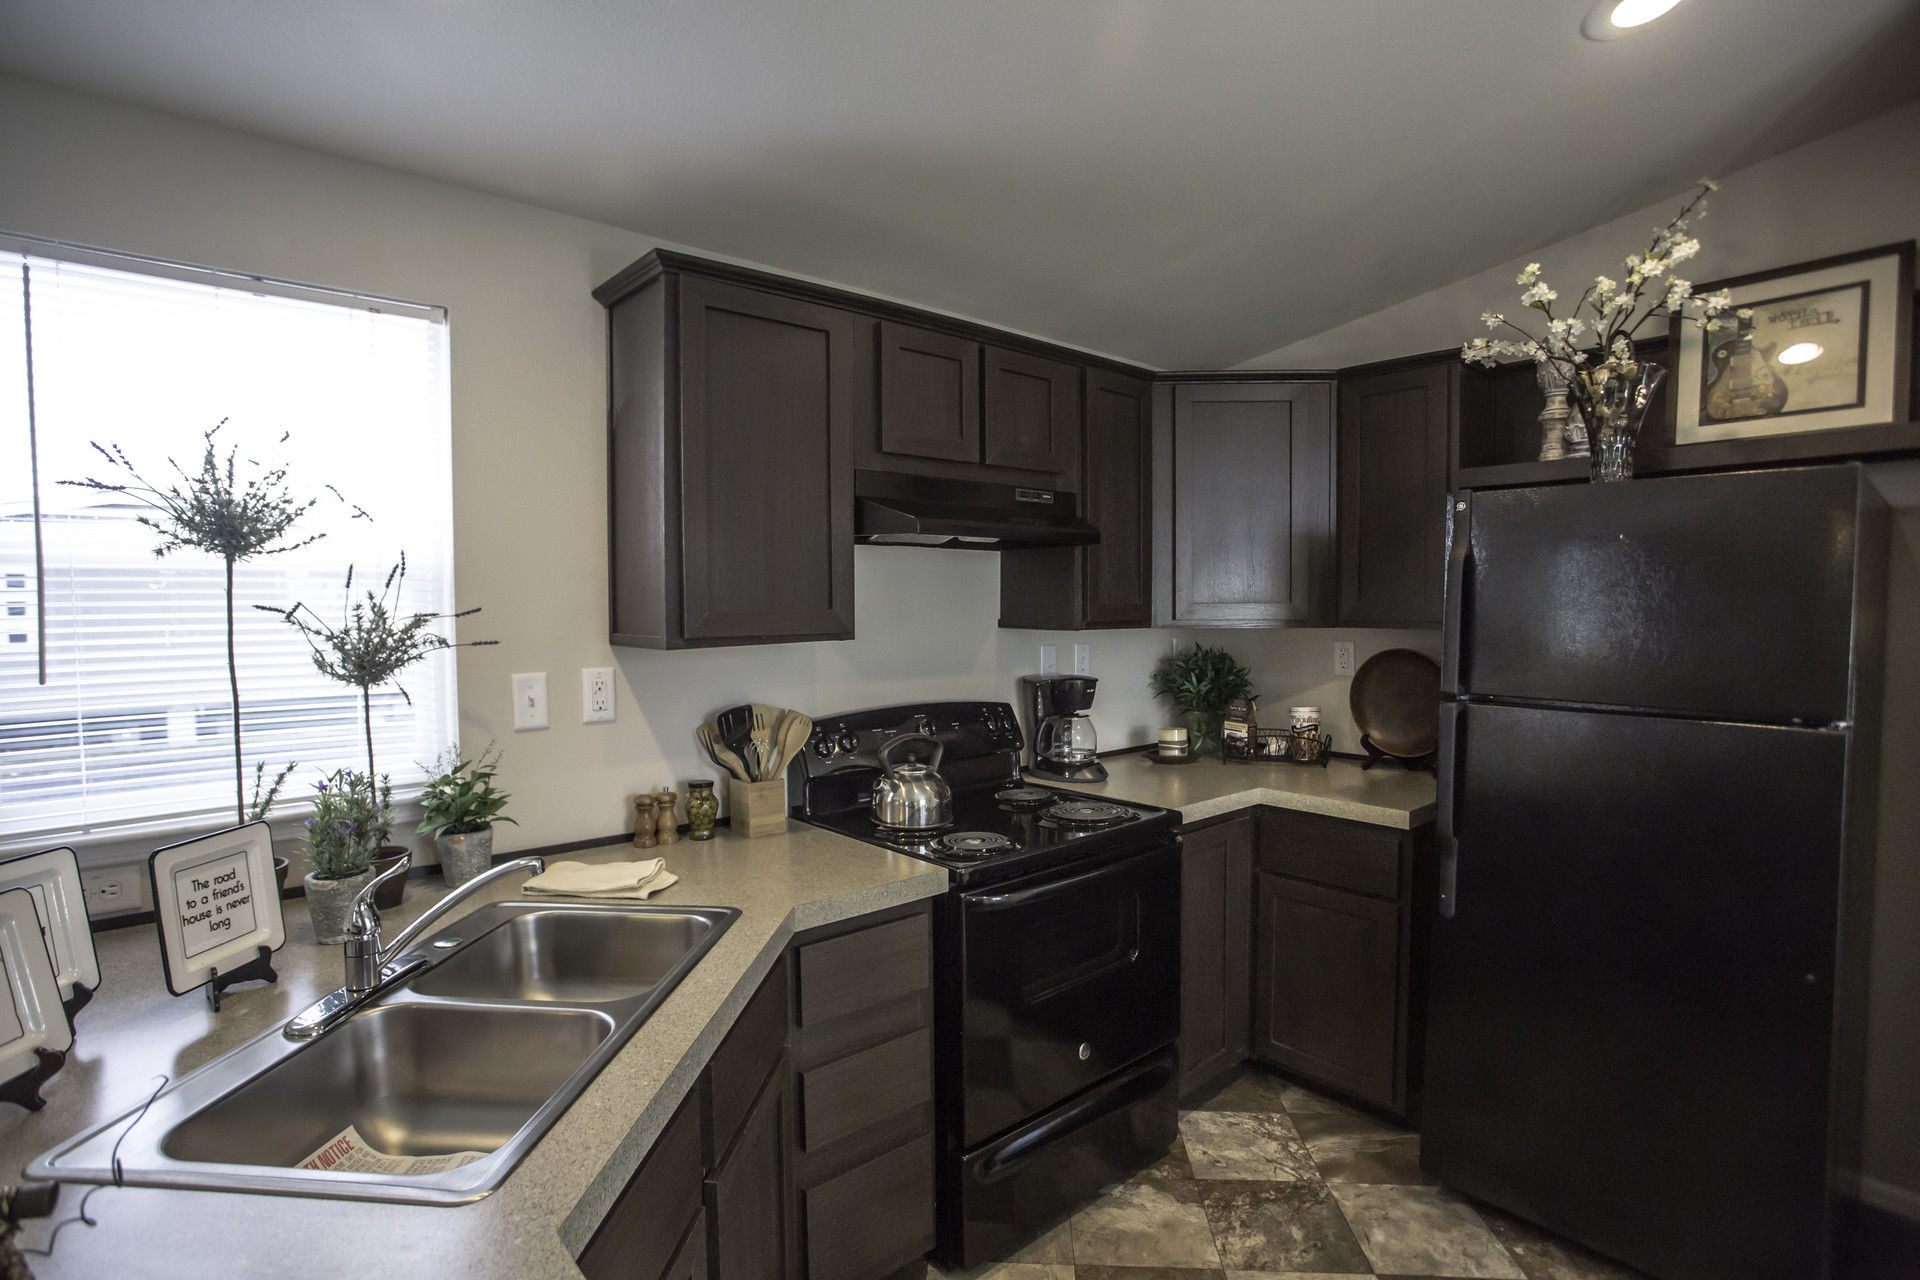 Modular Homes Arizona >> Palm Harbor (Albany,OR) 2 Bedroom Manufactured Home Perris for $46900 | Model 4P56S70 from Homes ...